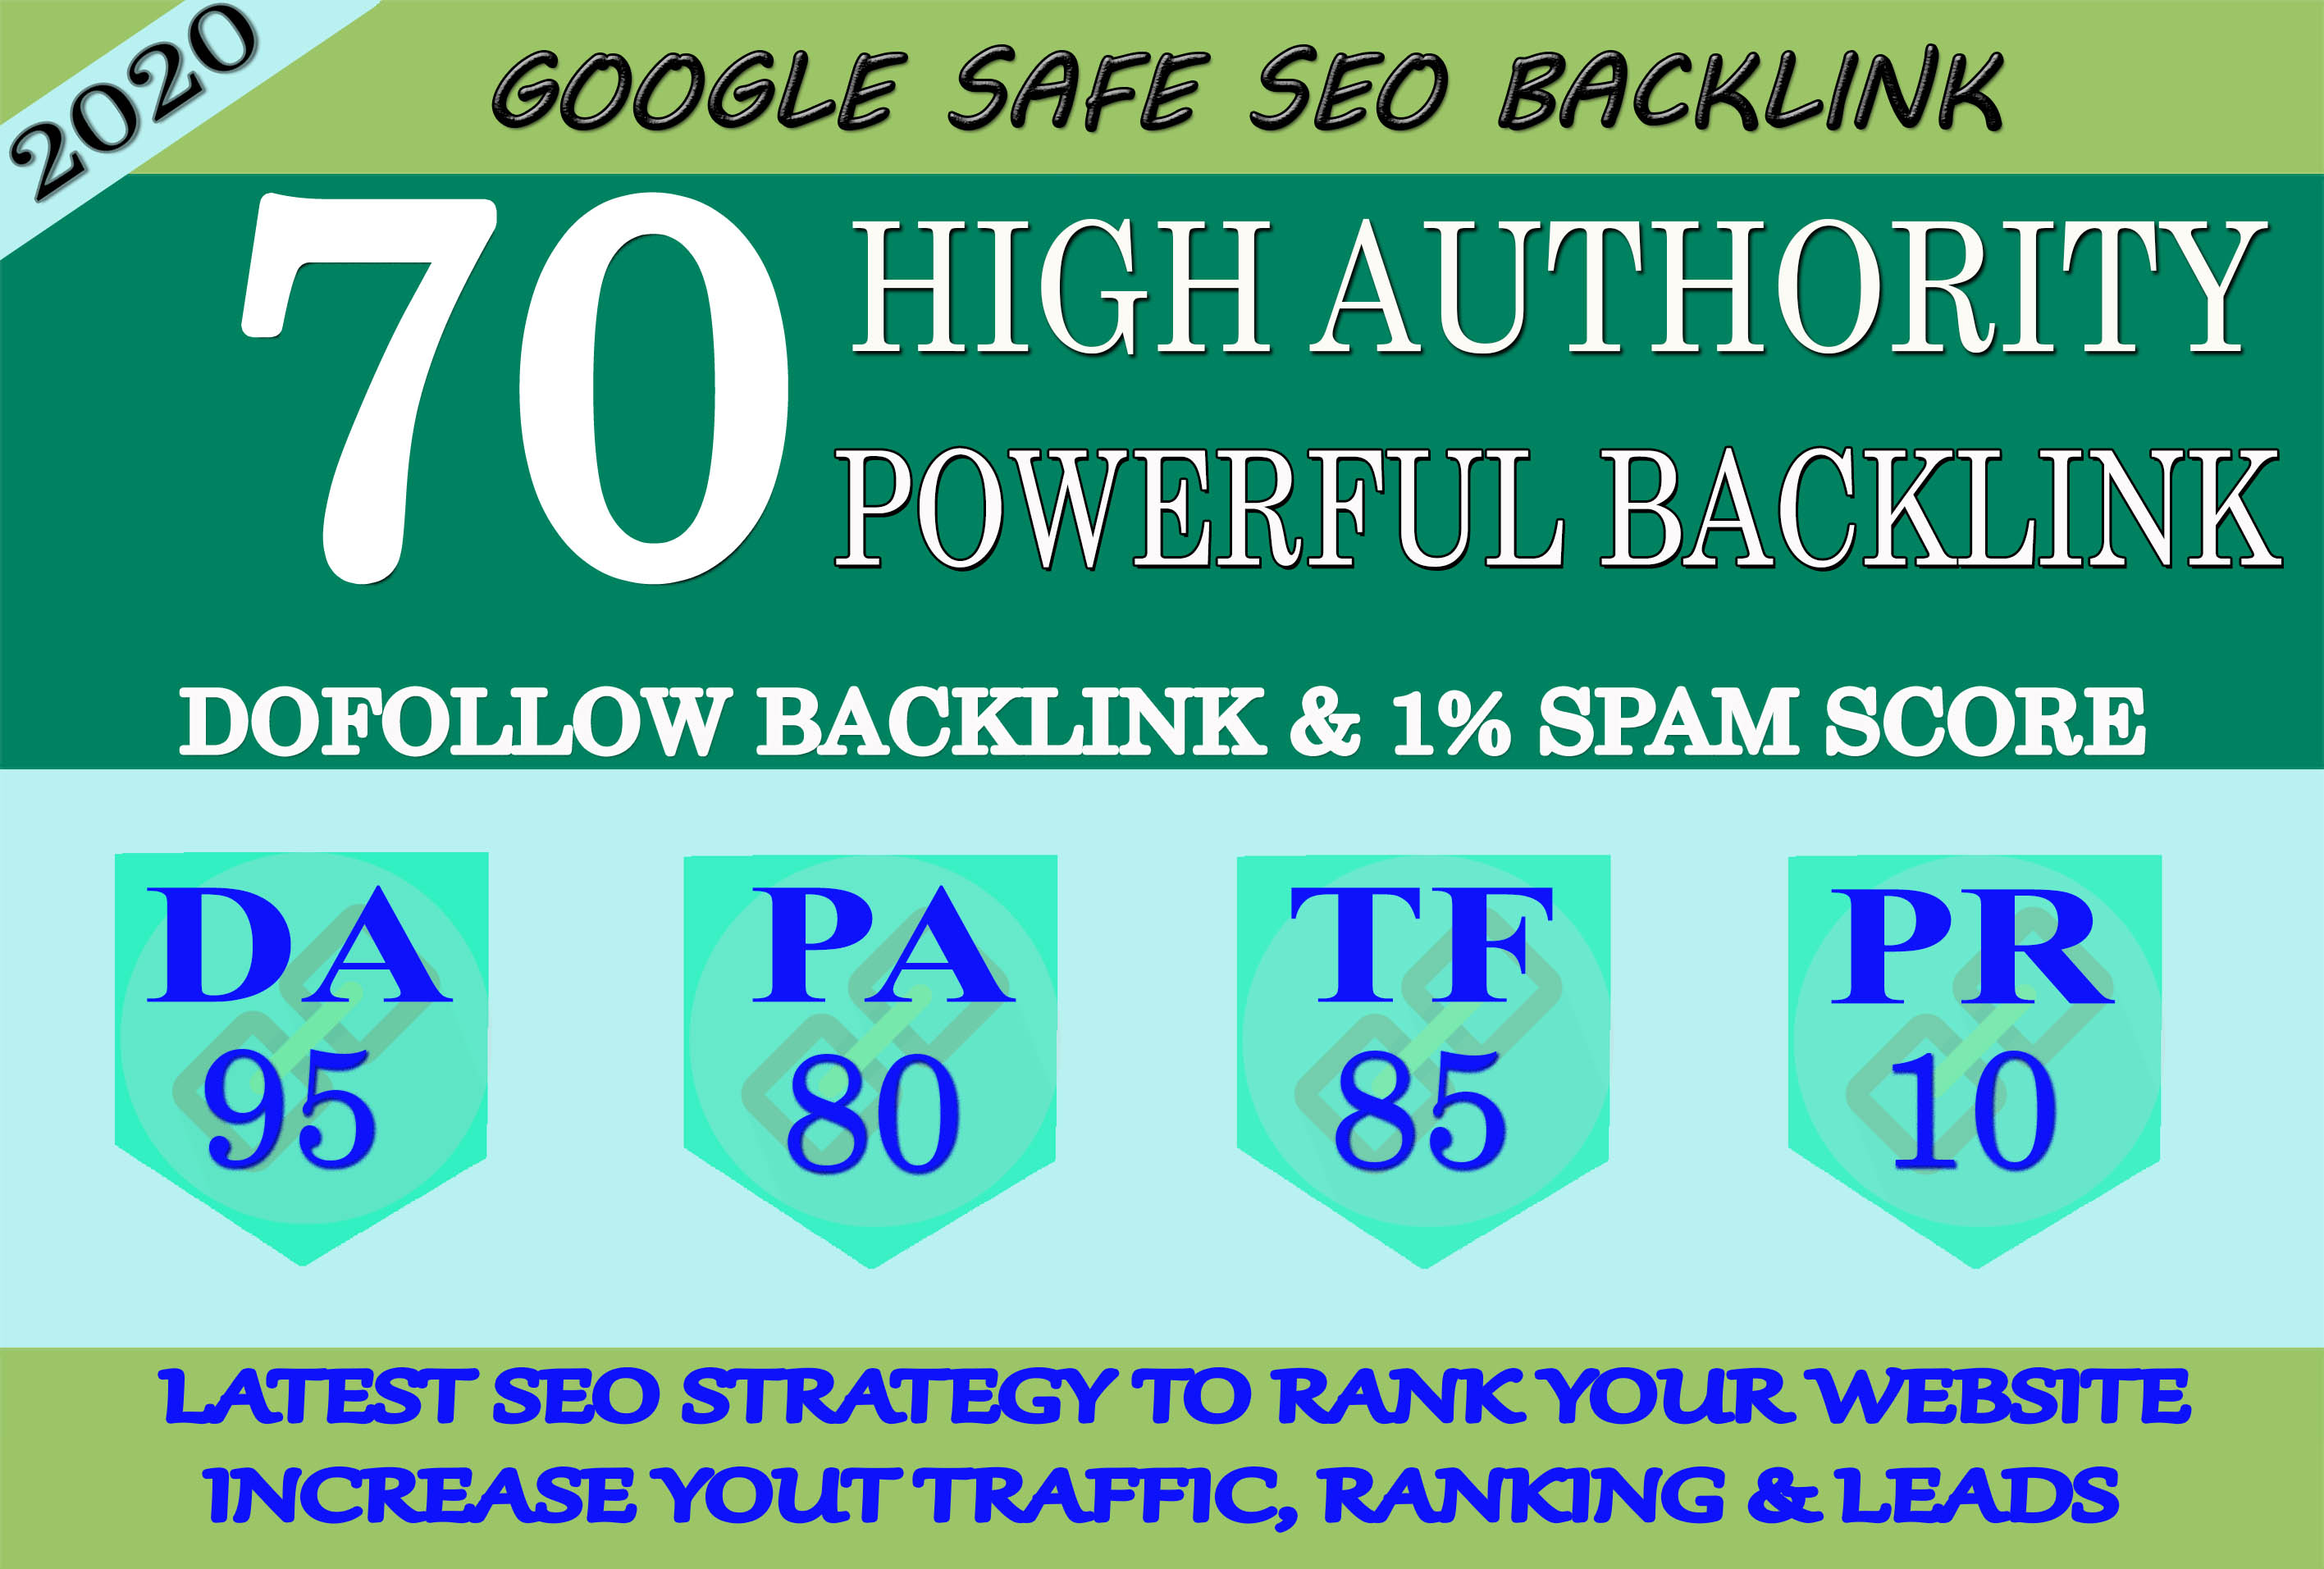 I Will Manually Do 70 High Quality PR10 BackIinks On DA 95 Sites To RANK Your Website